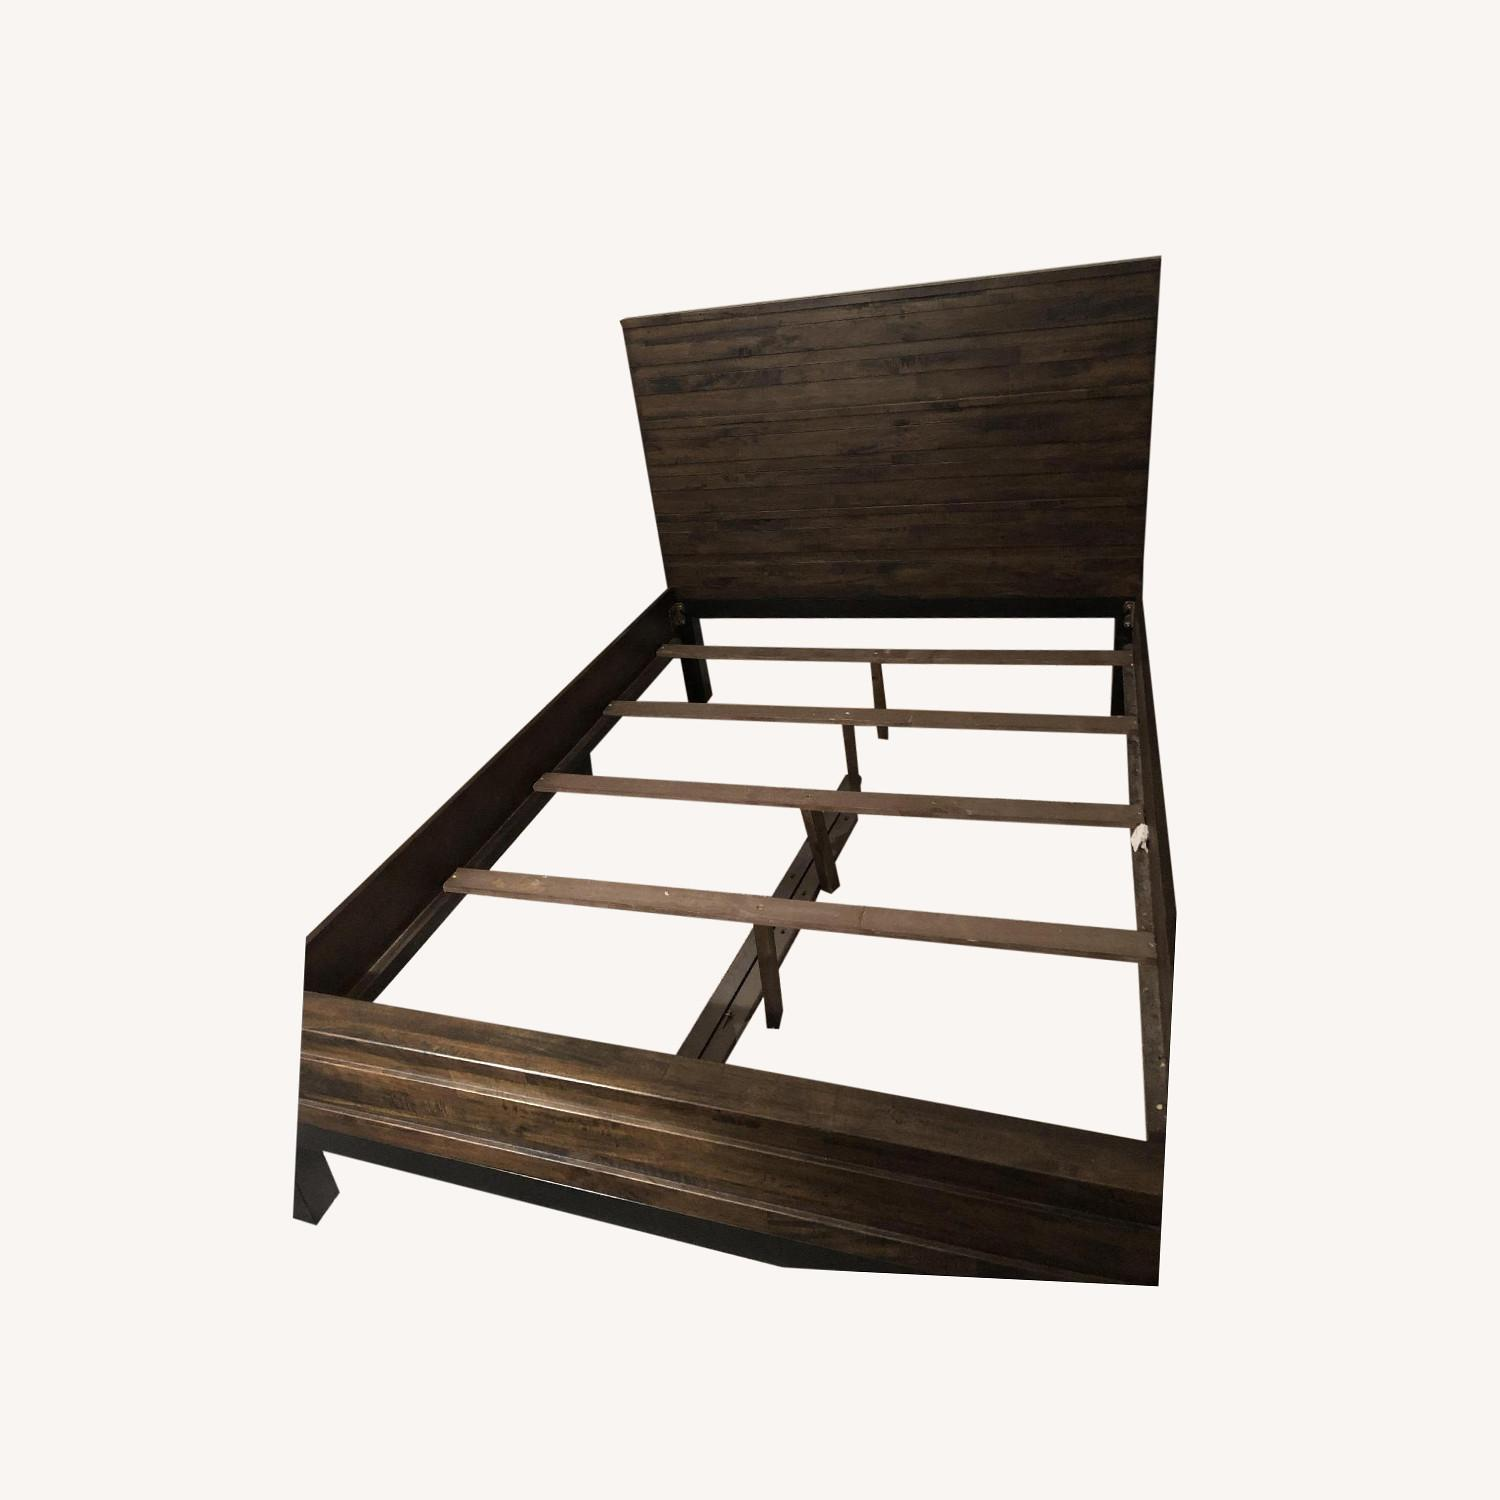 Raymour & Flanigan Queen Bed Nara collection - image-0